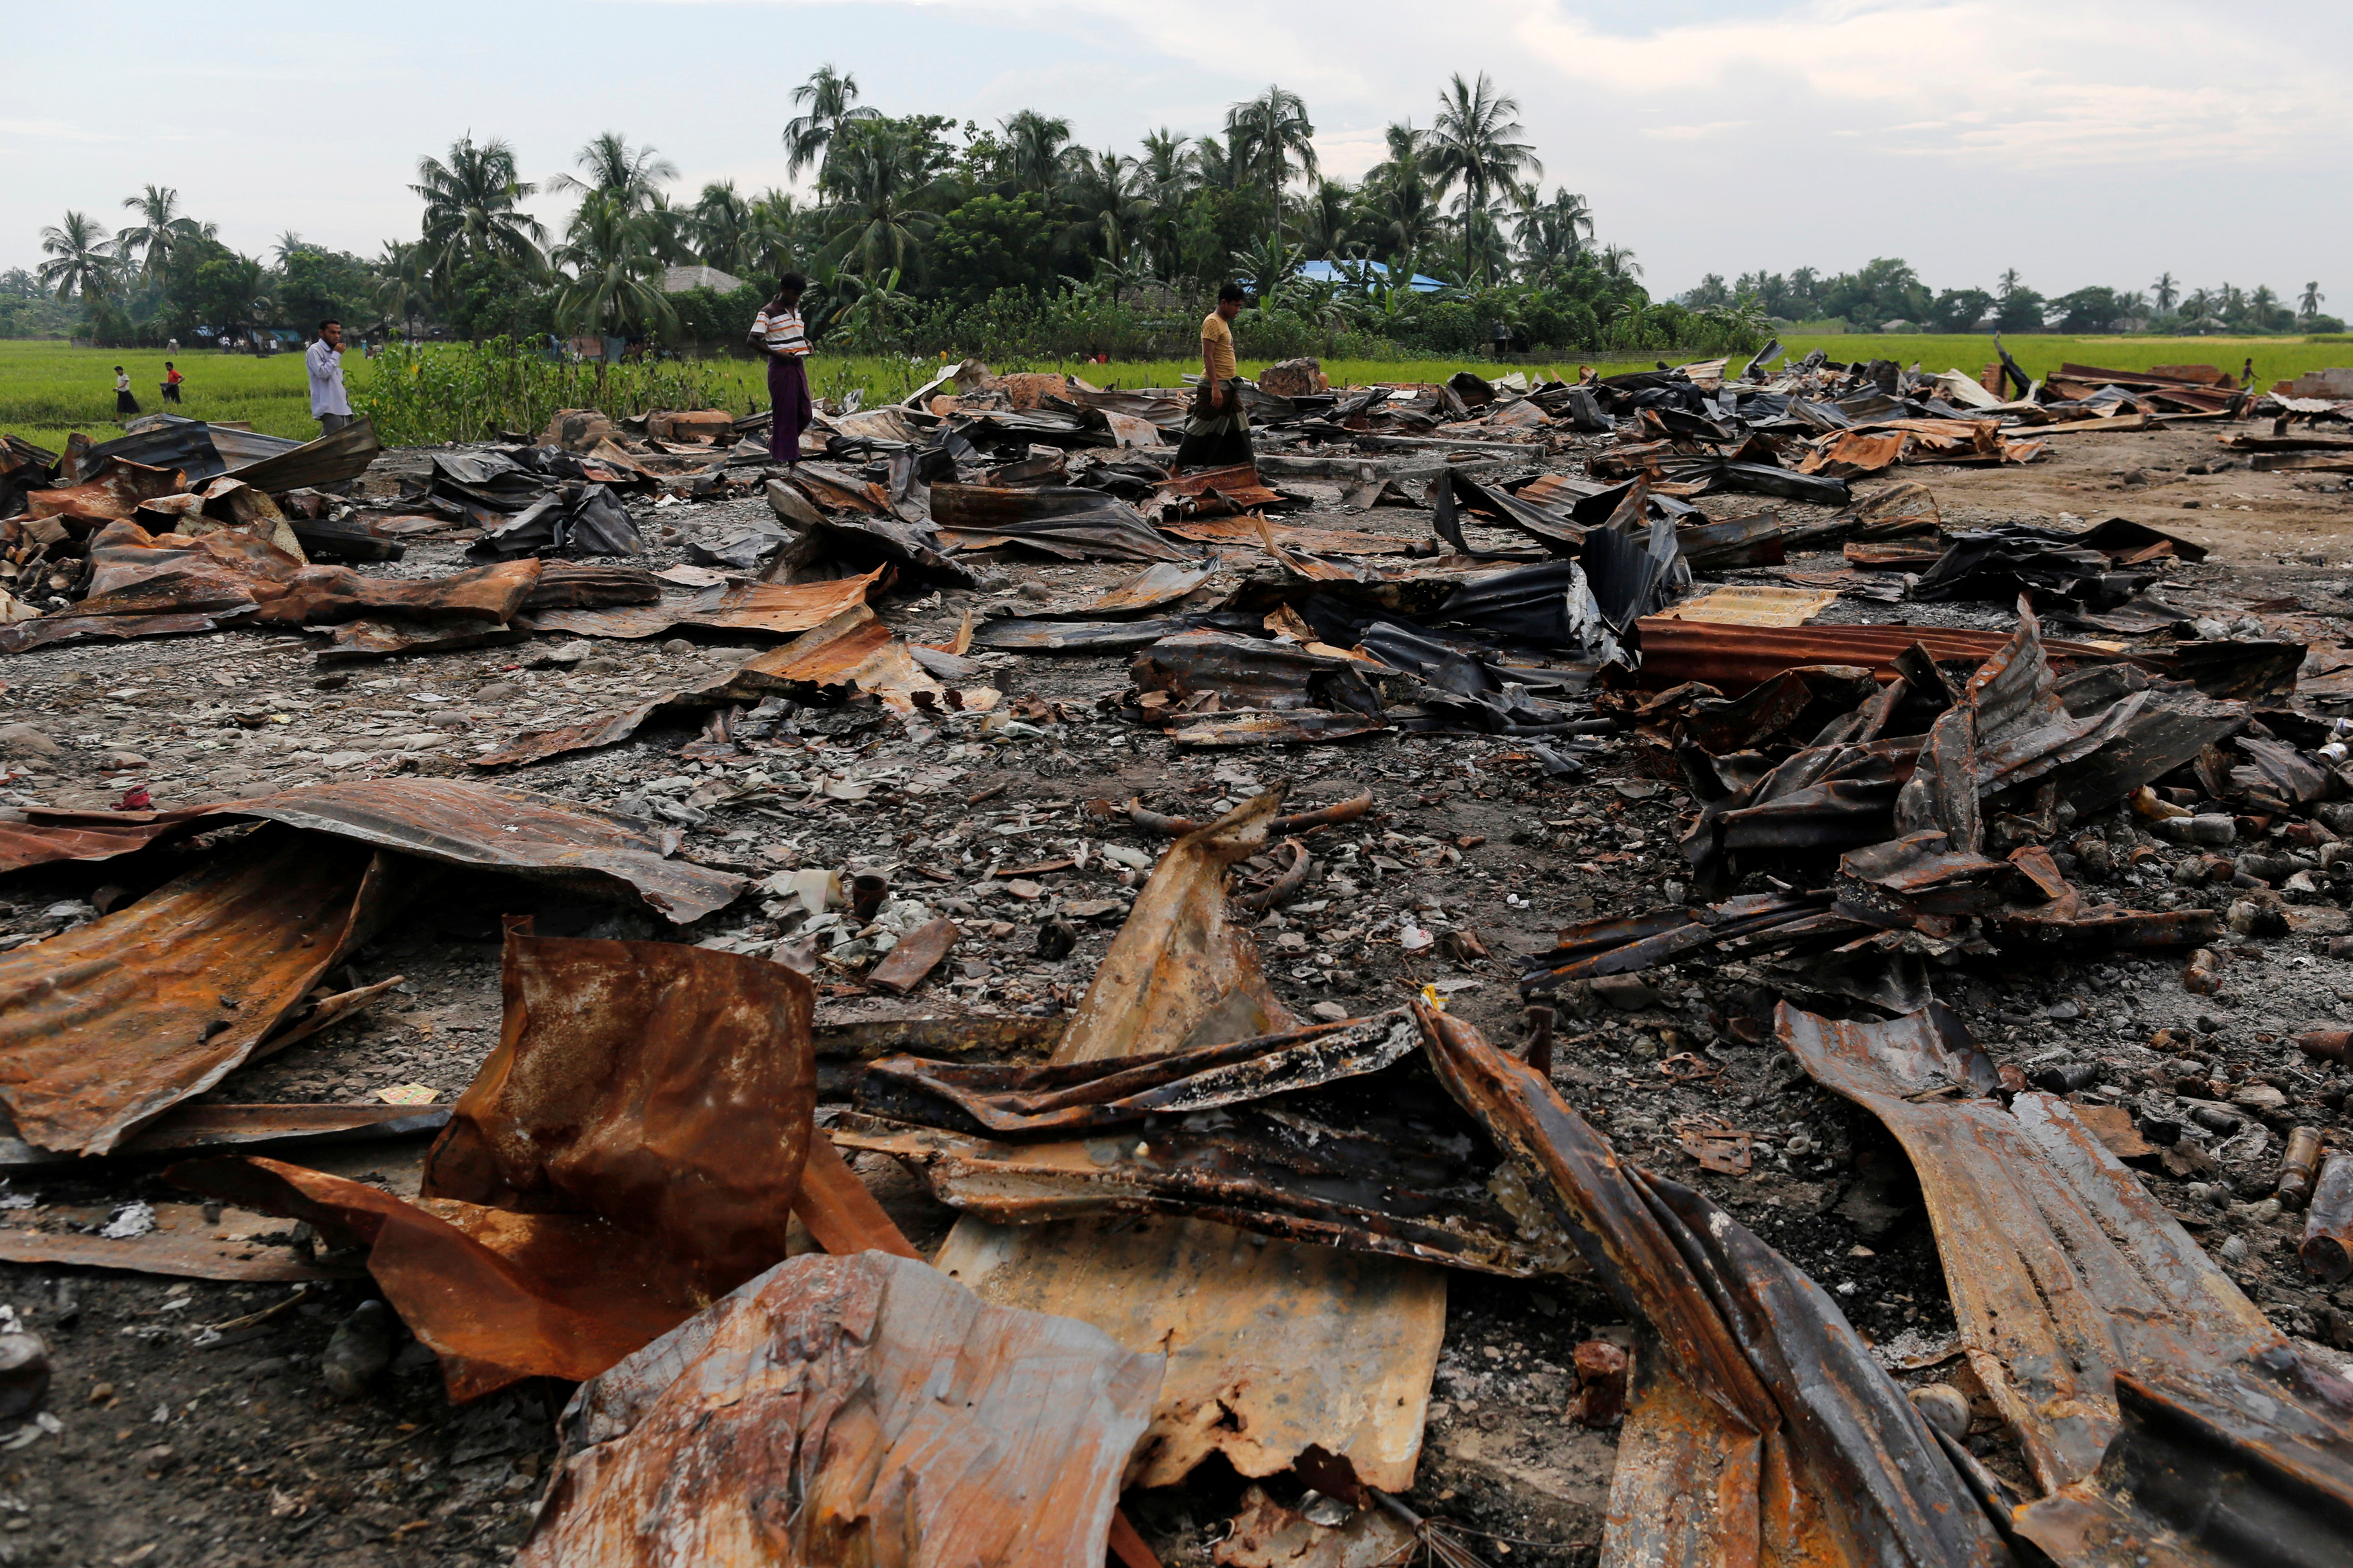 The ruins of a market that was set on fire are seen at a Rohingya village outside Maungdaw Township in Arakan State on 27 October 2016. (Photo: Reuters)